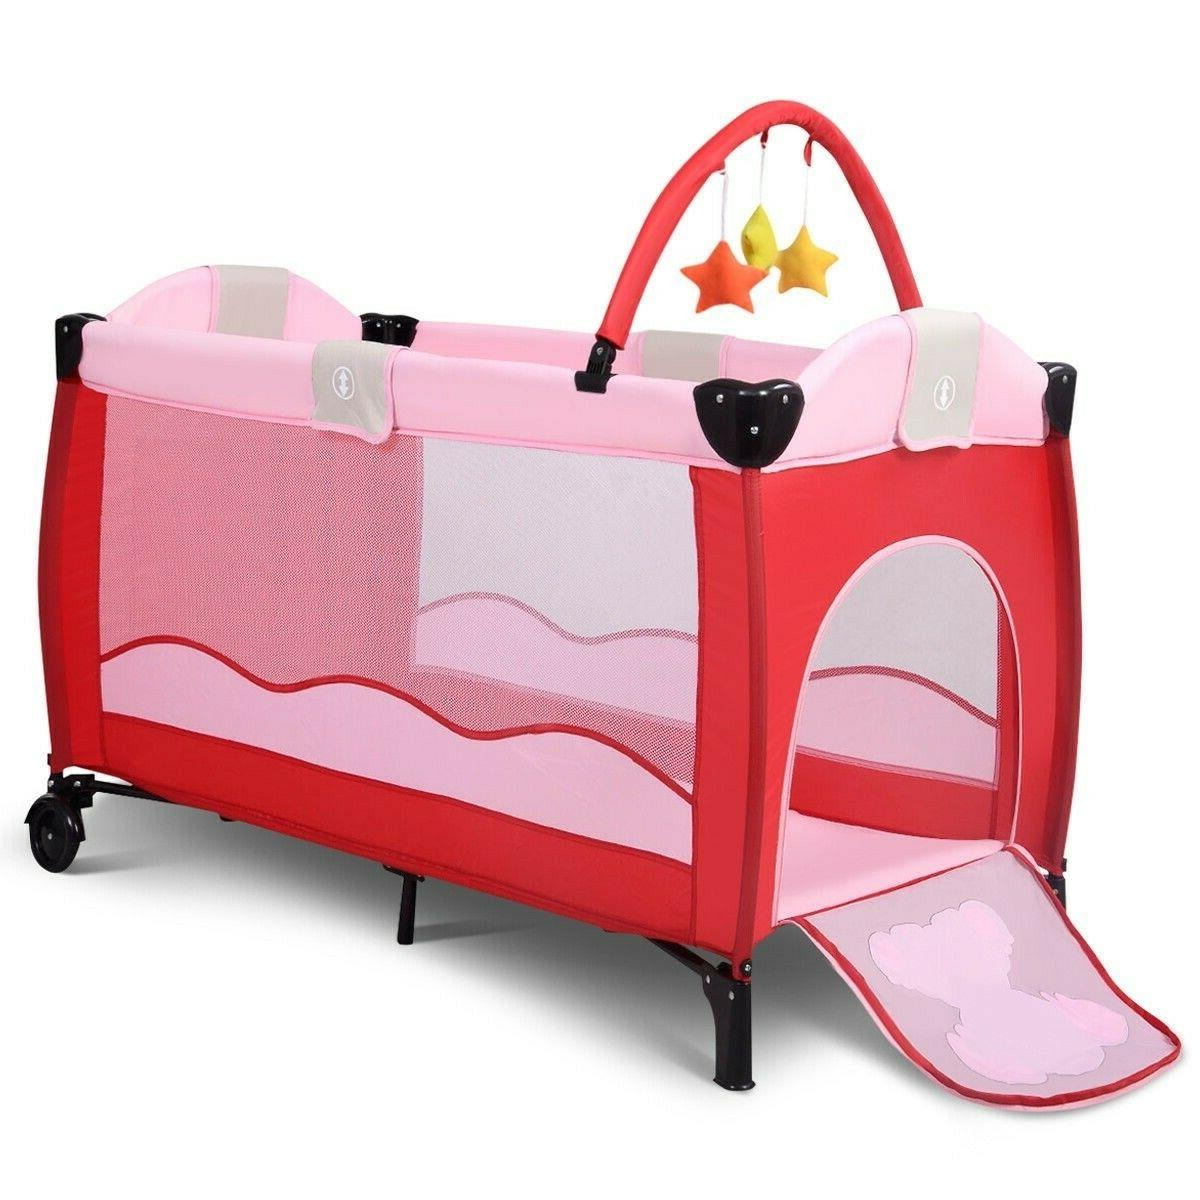 New Baby Playpen Playard Pack Infant Bassinet Bed